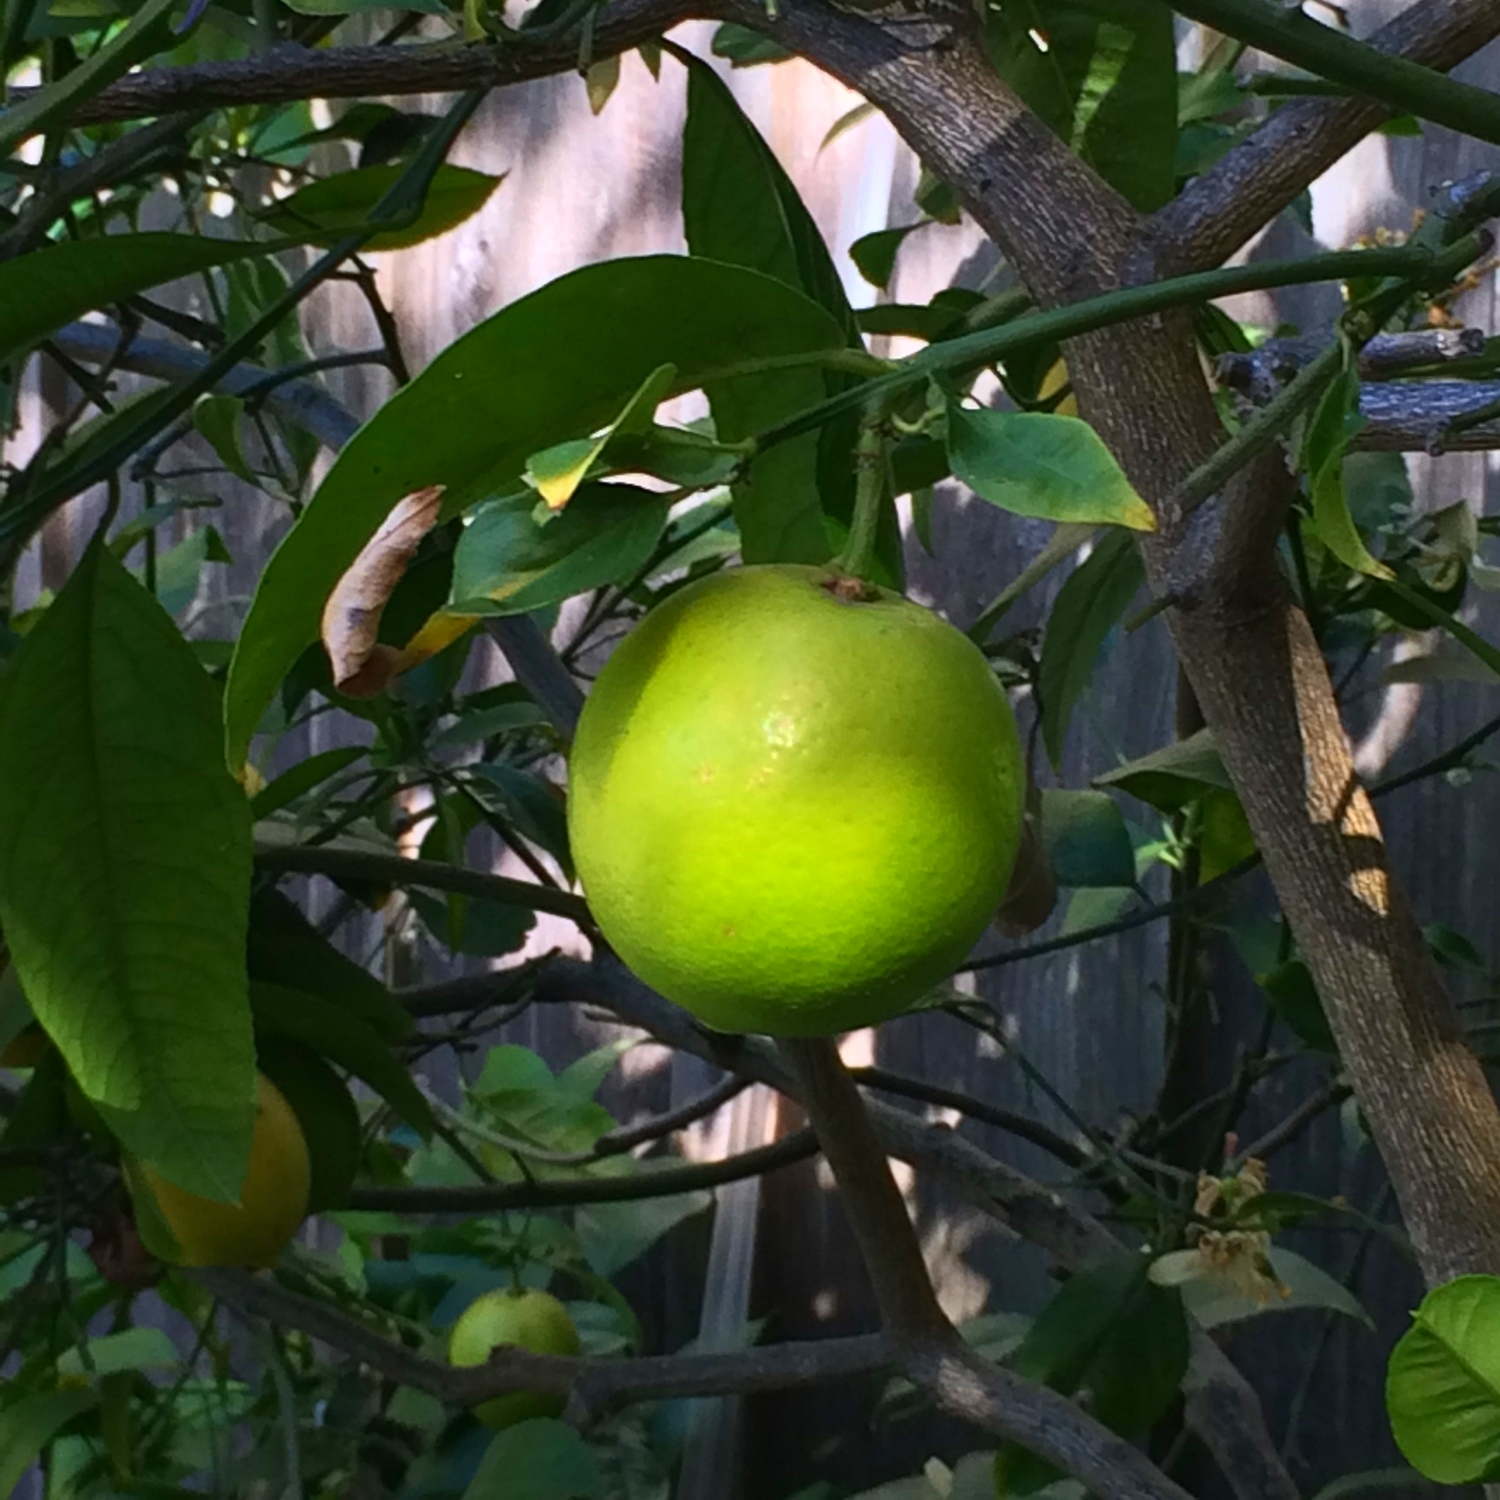 Ripening lime